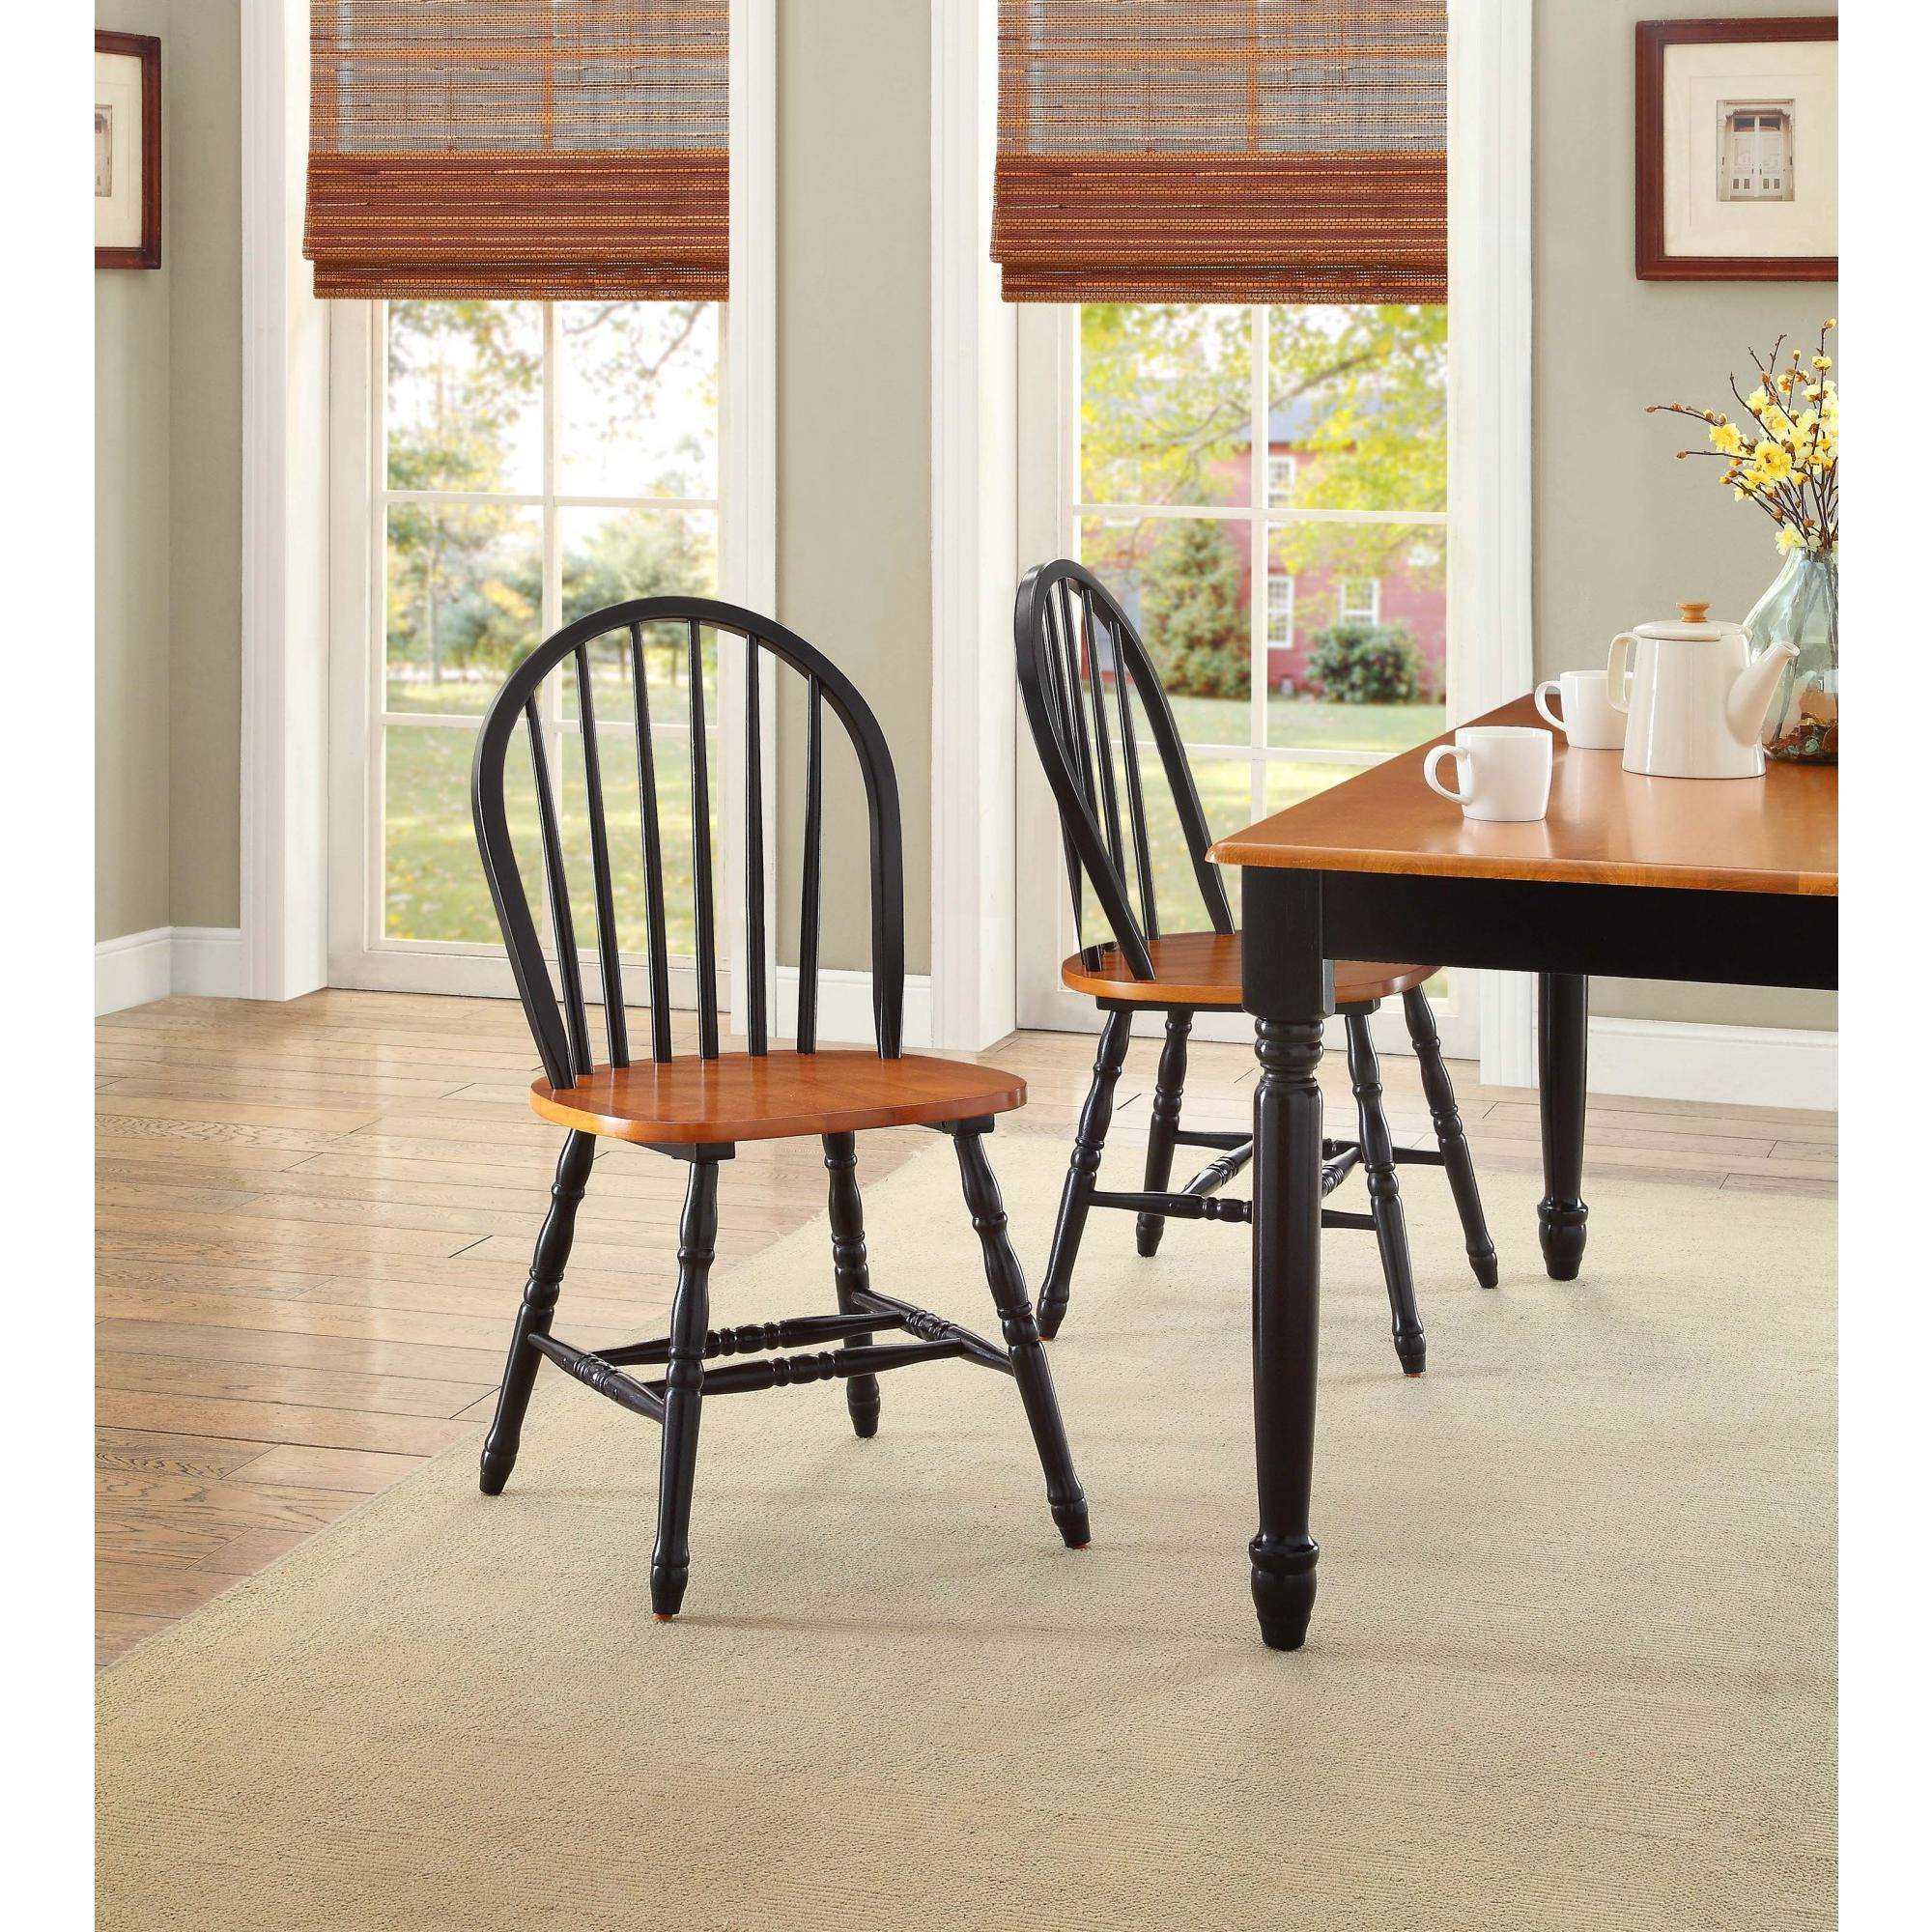 better homes and gardens autumn lane windsor chairs set of 2 black and oak